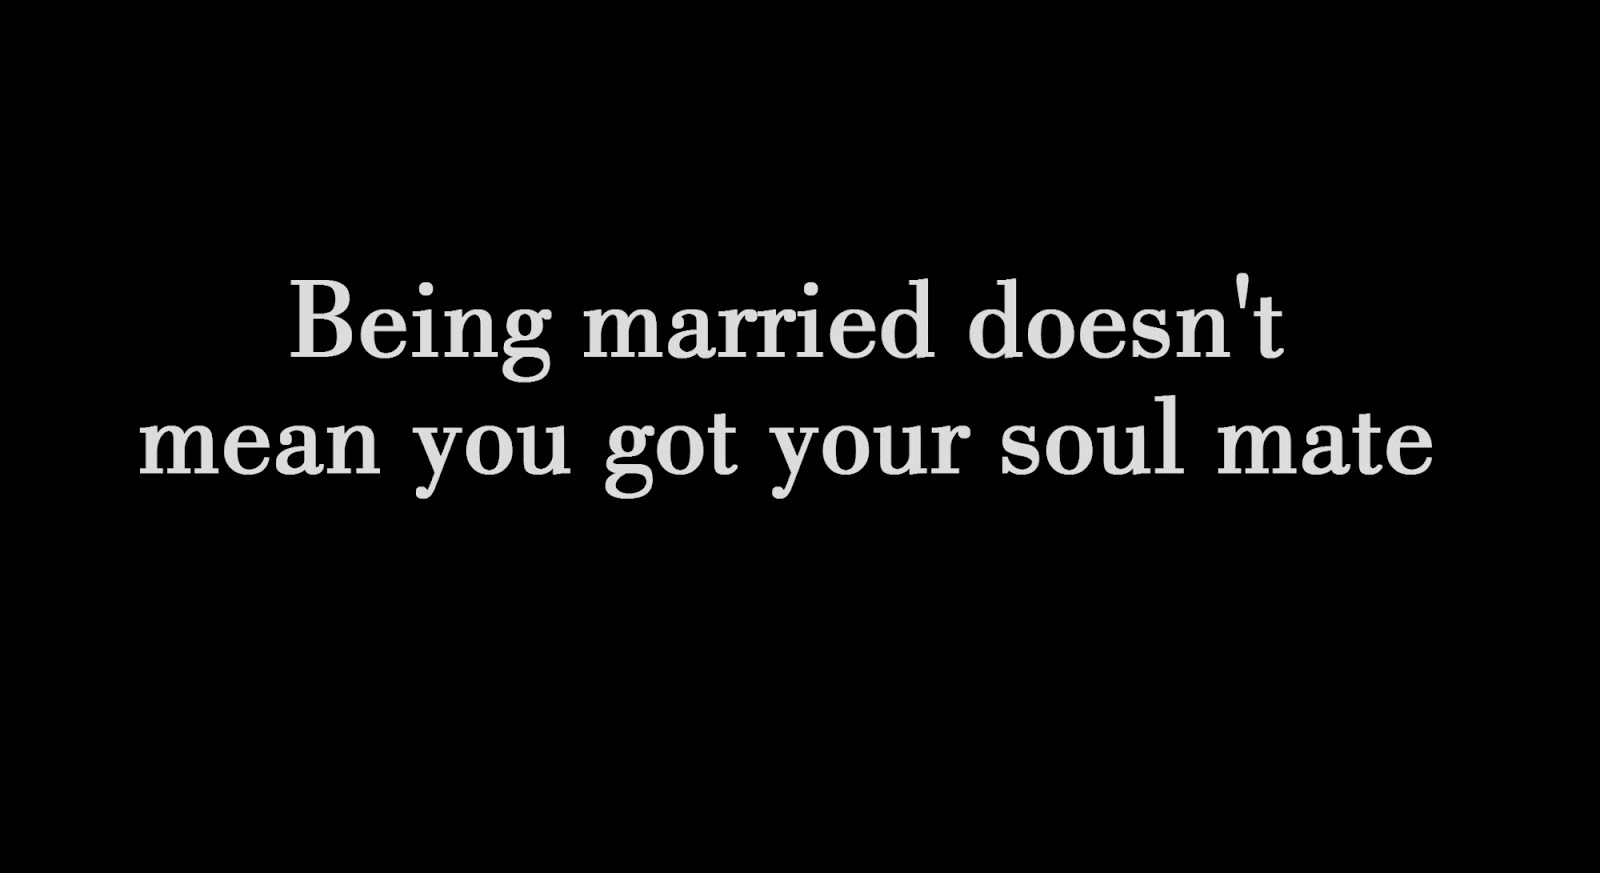 Being married doesn't mean you got your soul mate